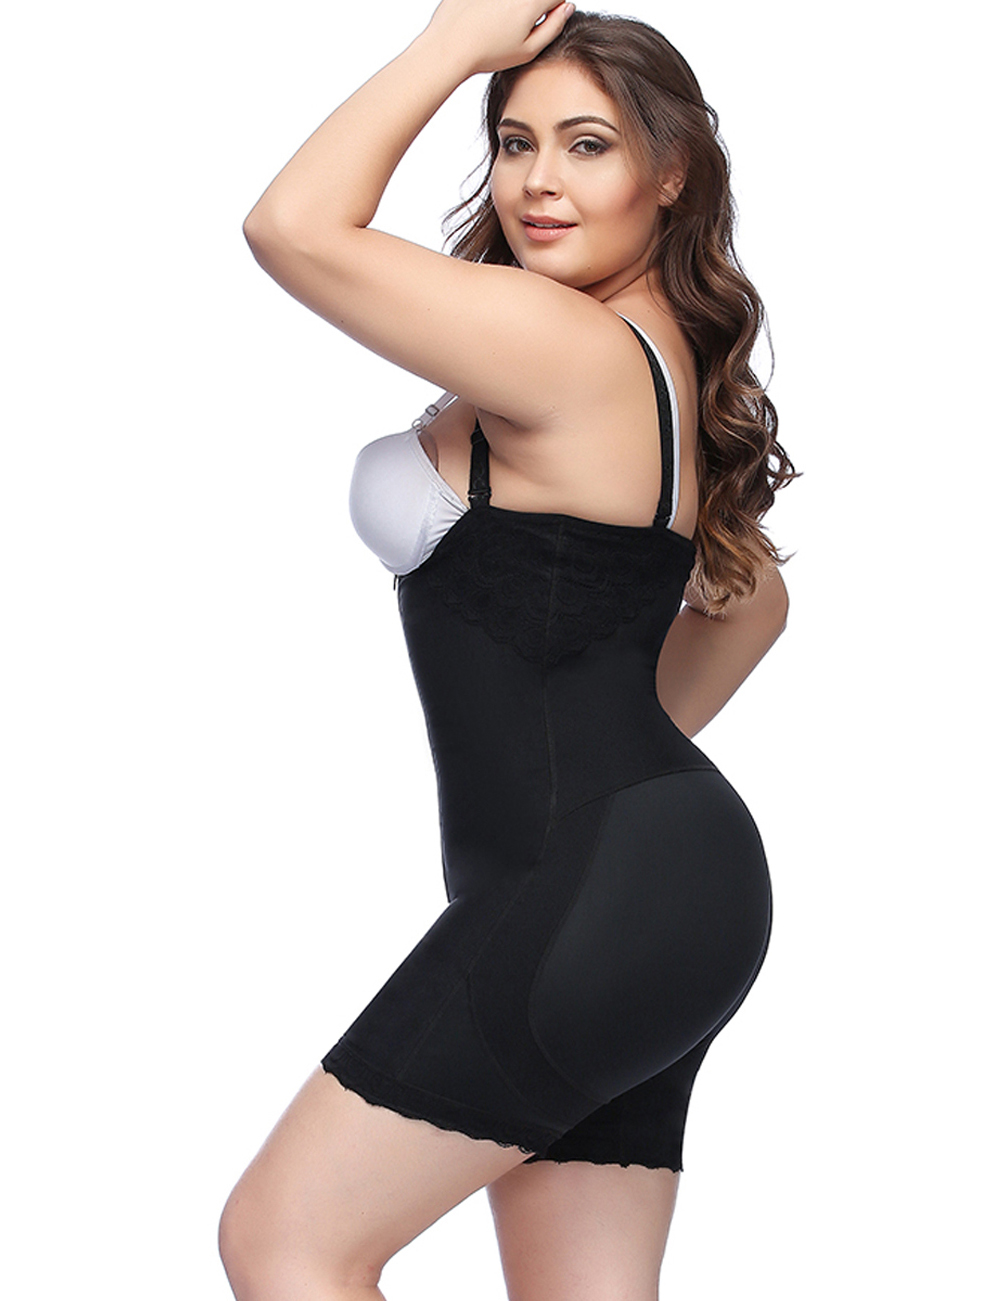 //cdn.affectcloud.com/hexinfashion/upload/imgs/Shapewear/Full_Body_Shaper/B180088-BK1/B180088-BK1-201910295db7fe607c560.jpg